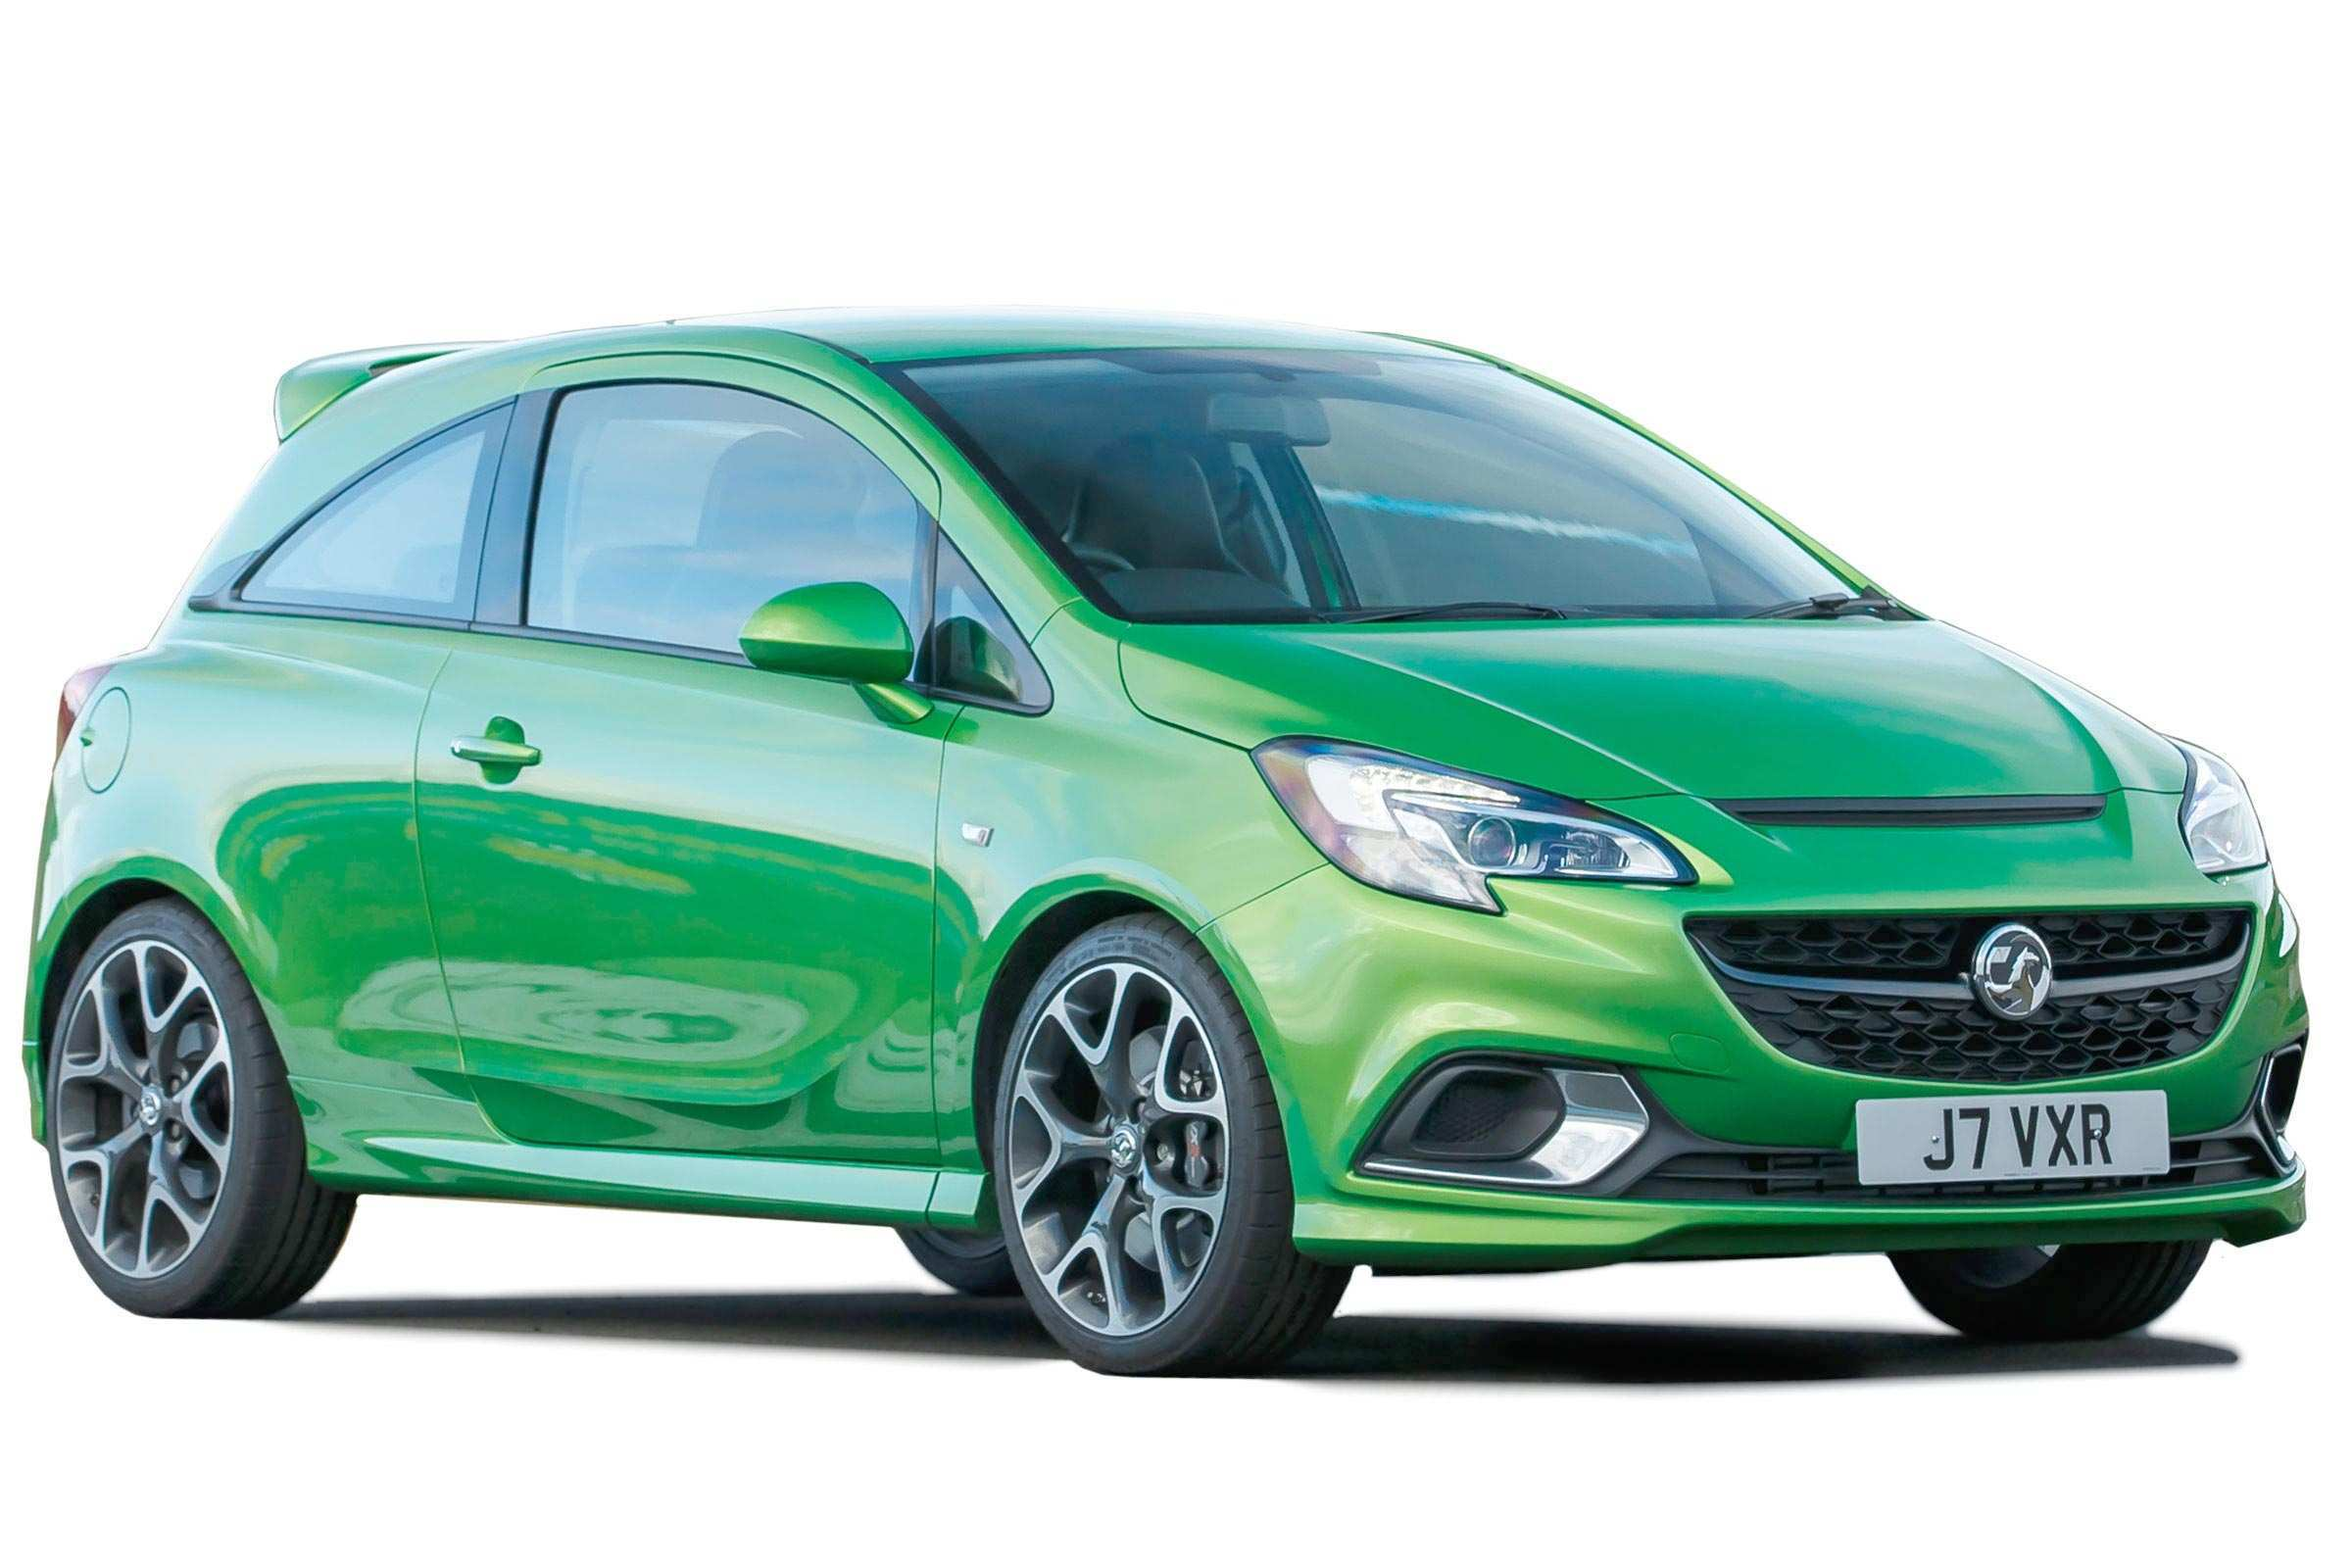 21 The 2019 Vauxhall Corsa VXR Release